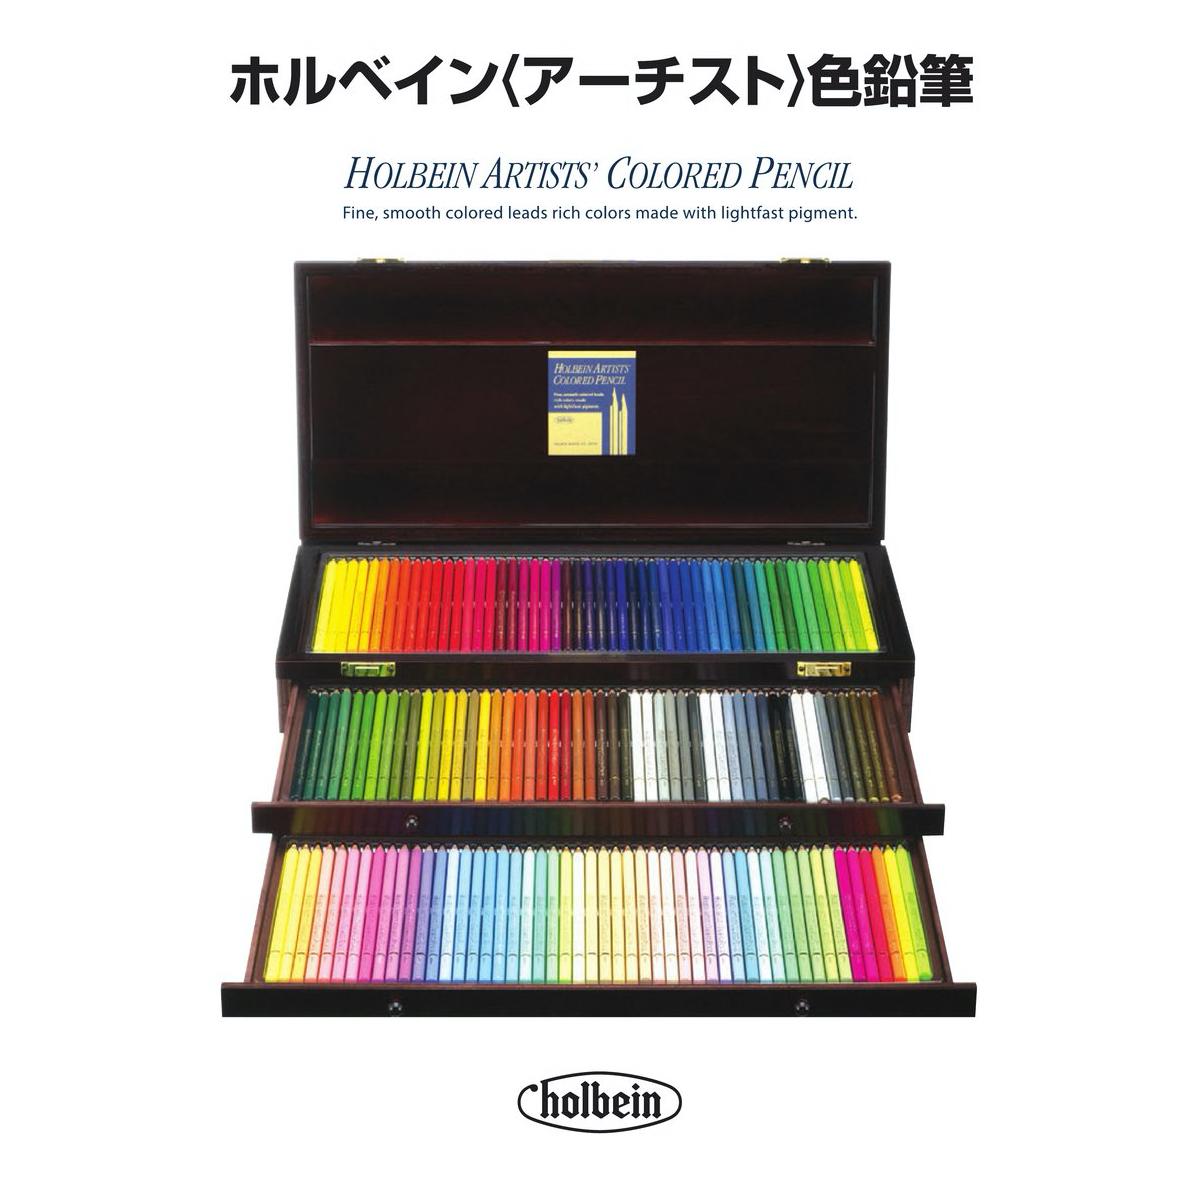 Цветные карандаши Holbein Artists' Colored Pencil